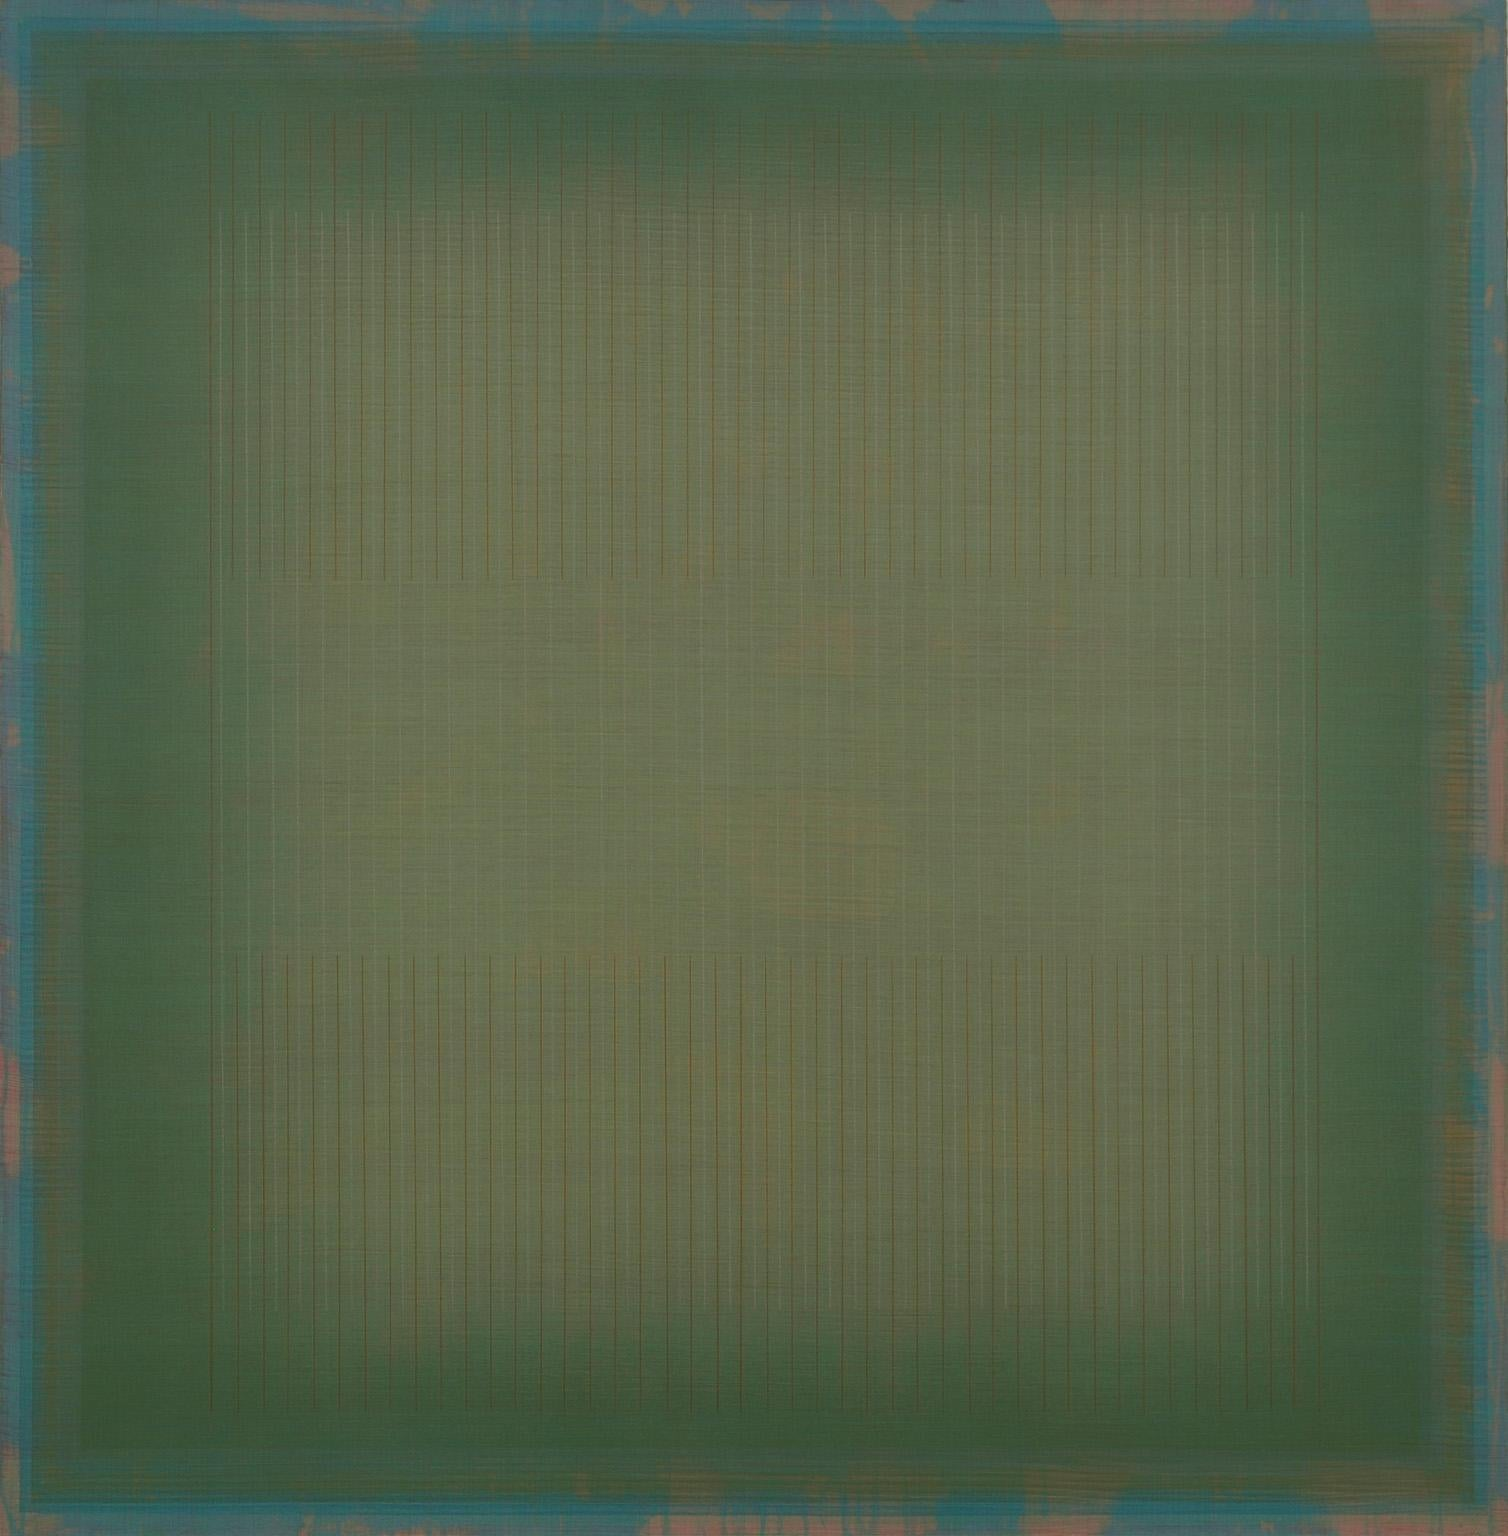 Like Setting Suns at the Rodeo - Large Green Geometric Color Field Painting